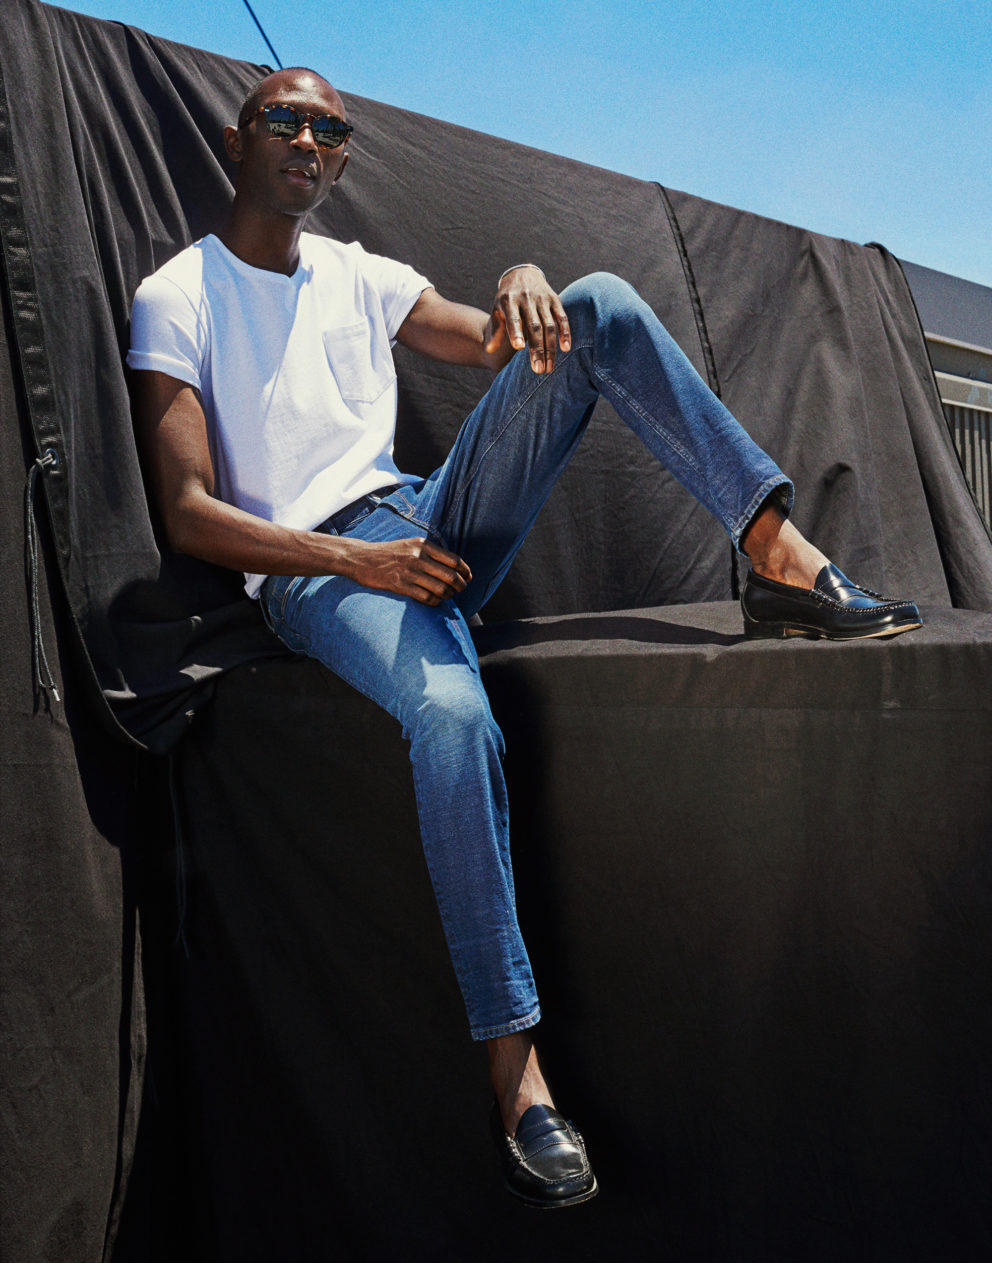 190626 0040 Bonobos Denim And Styleguide Armando Cabral 092